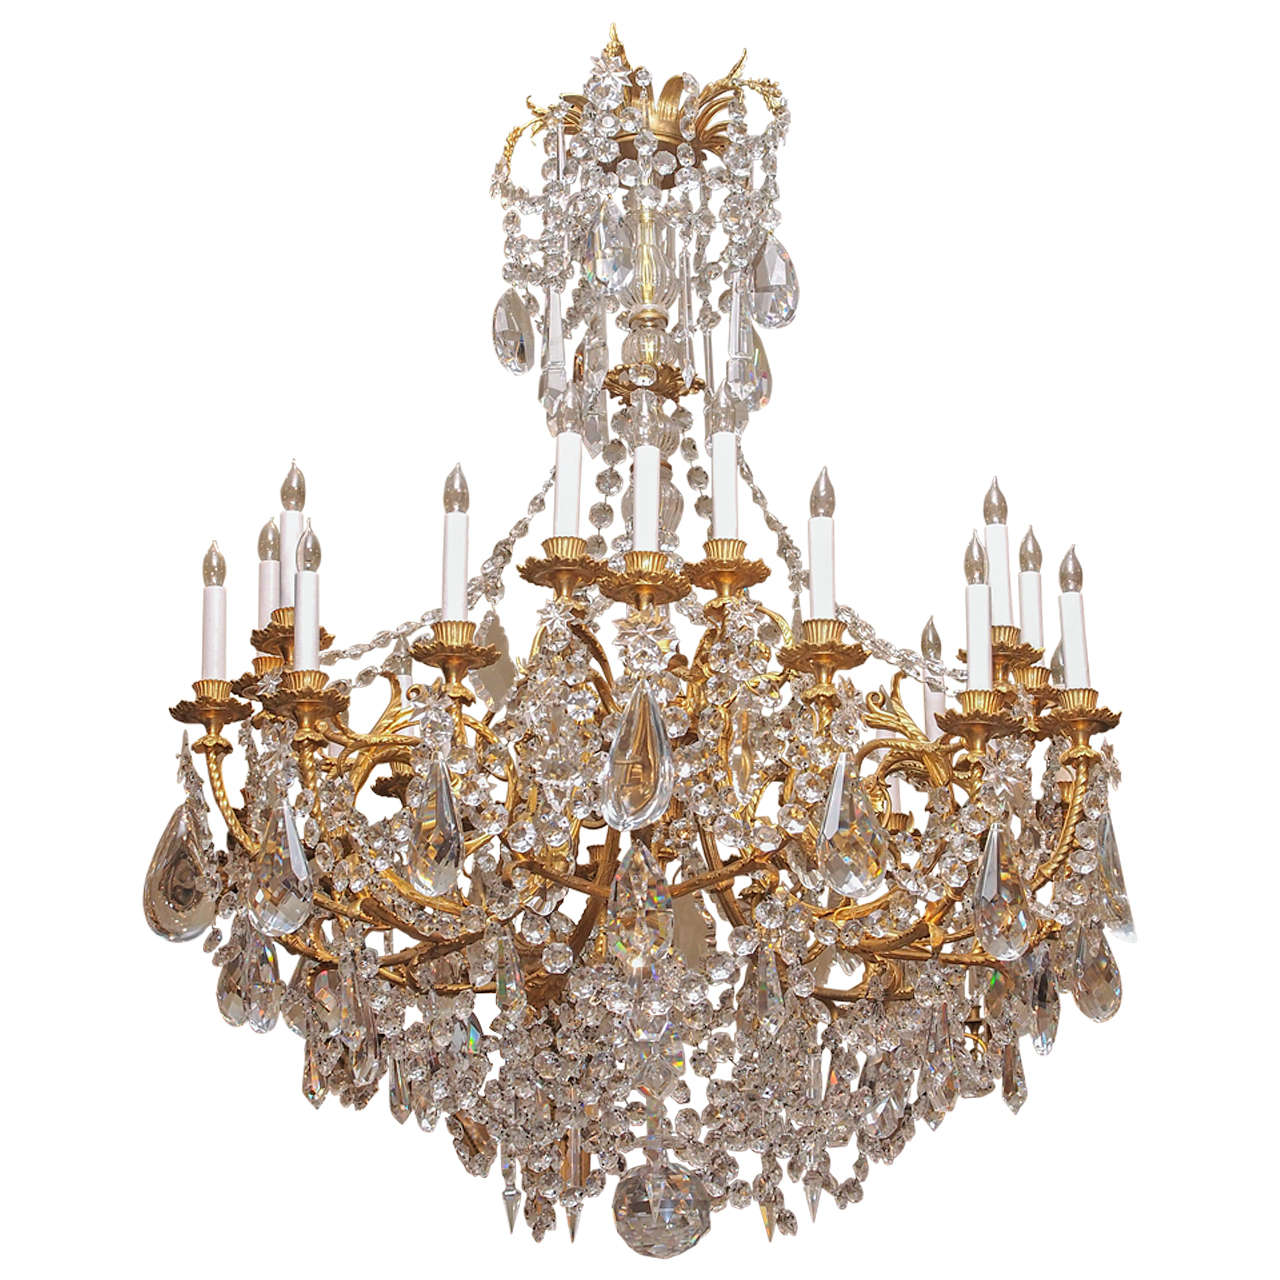 Antique French Baccarat Crystal and Bronze D'ore 24 Light Chandelier circa  1890 1 - Antique French Baccarat Crystal And Bronze D'ore 24 Light